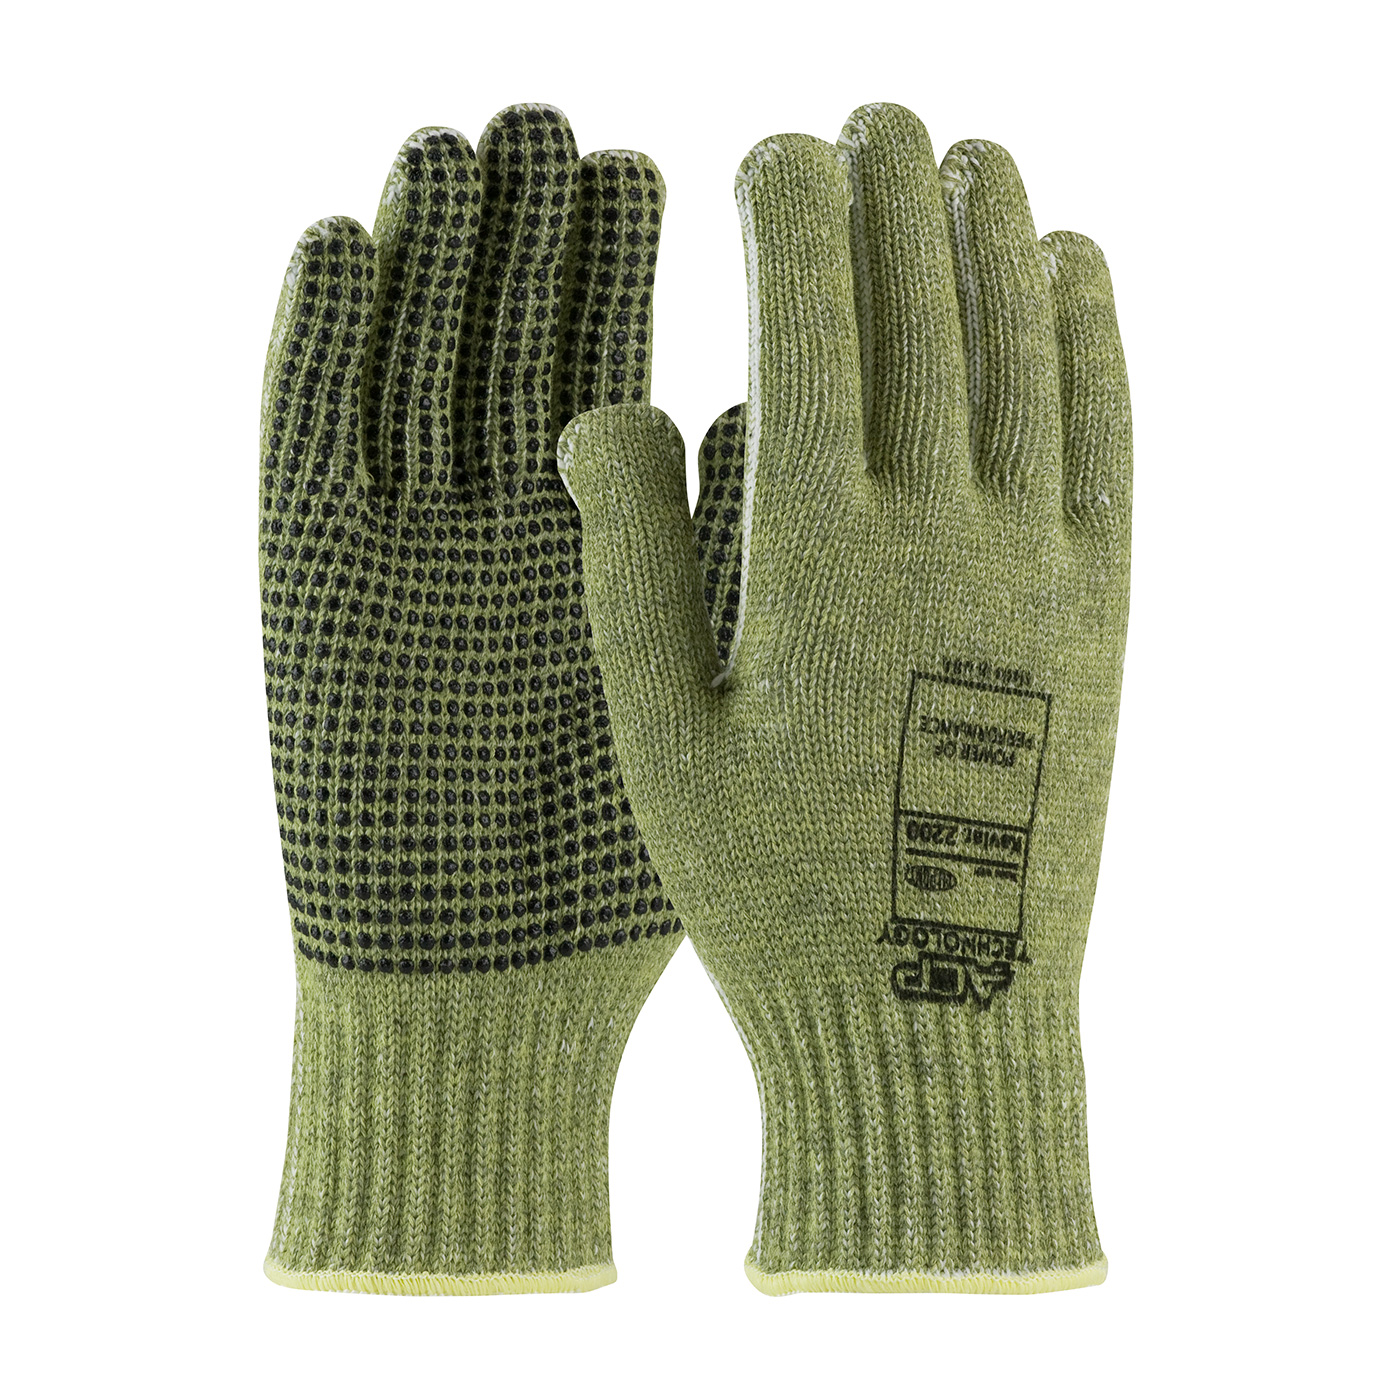 08-KA740PD PIP®  ACP Technology™ Economy Weight Kevlar® Glove w/ Polyester Lining and Green PVC Dot Grip